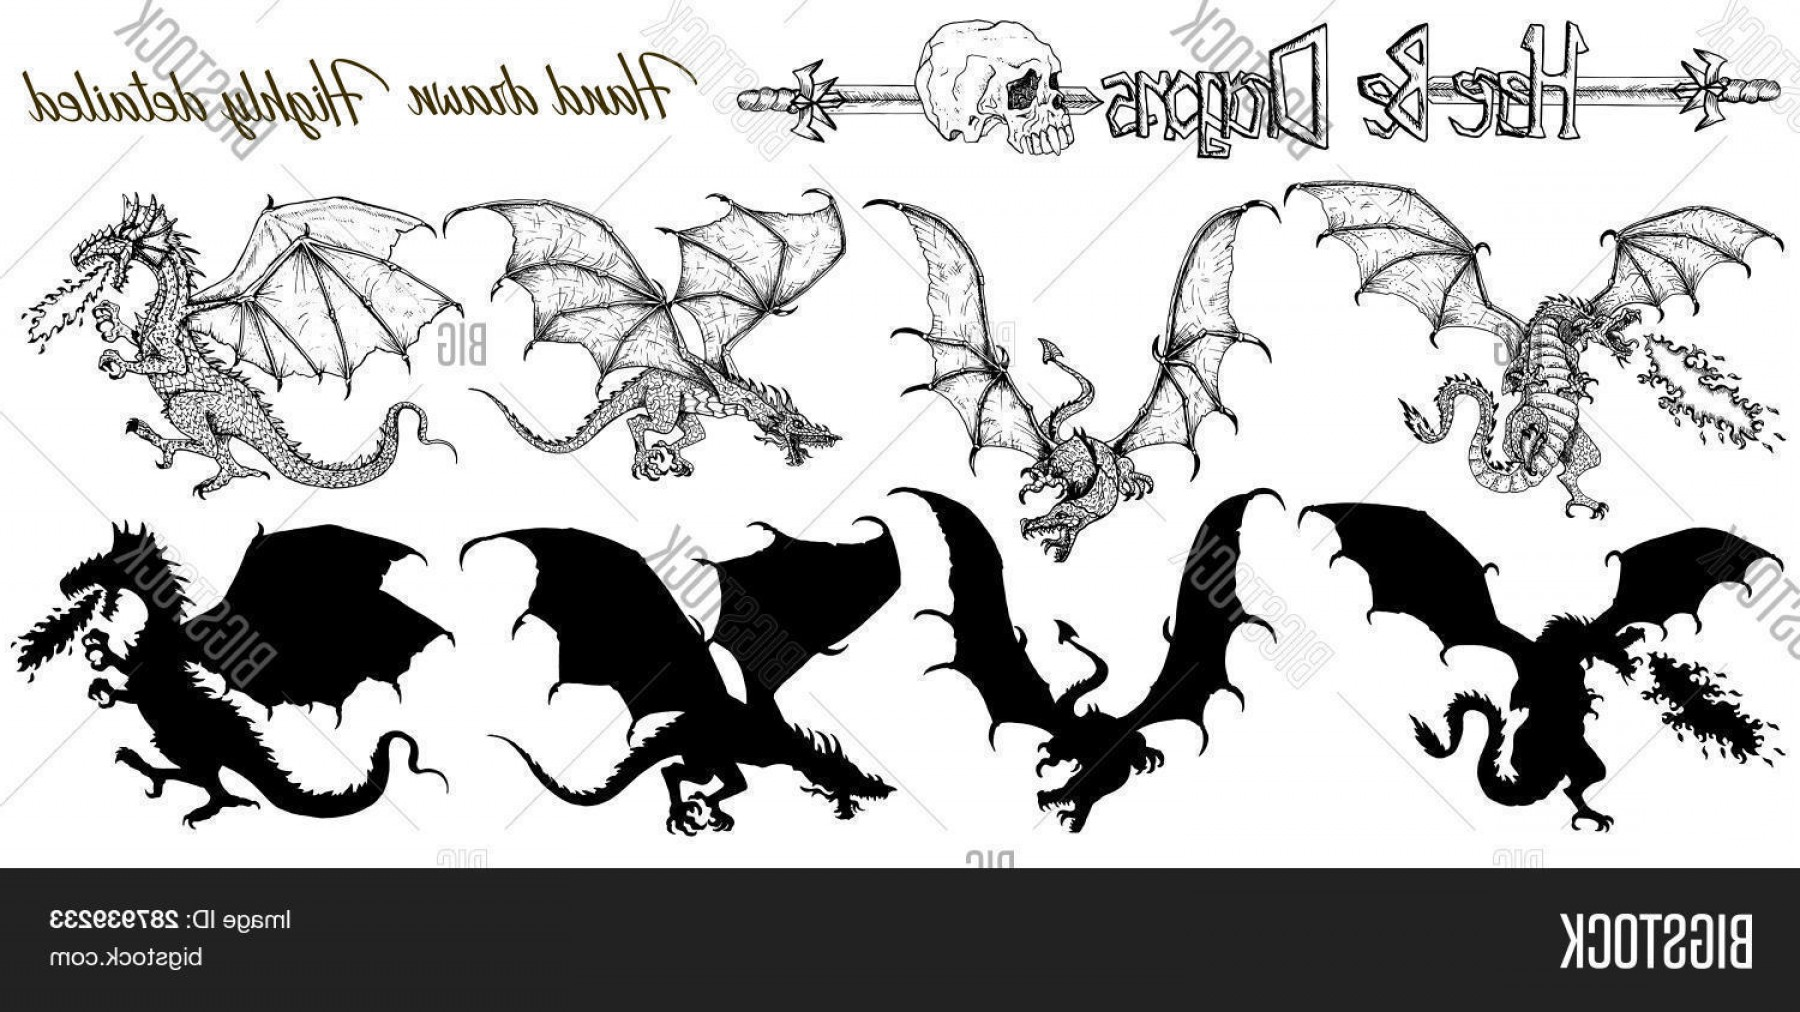 Detailed Tattoo Vector Images: Stock Vector Set With Hand Drawn Realistic Detailed Dragons And Silhouettes On White Vector Sketch Of Tattoo Fan